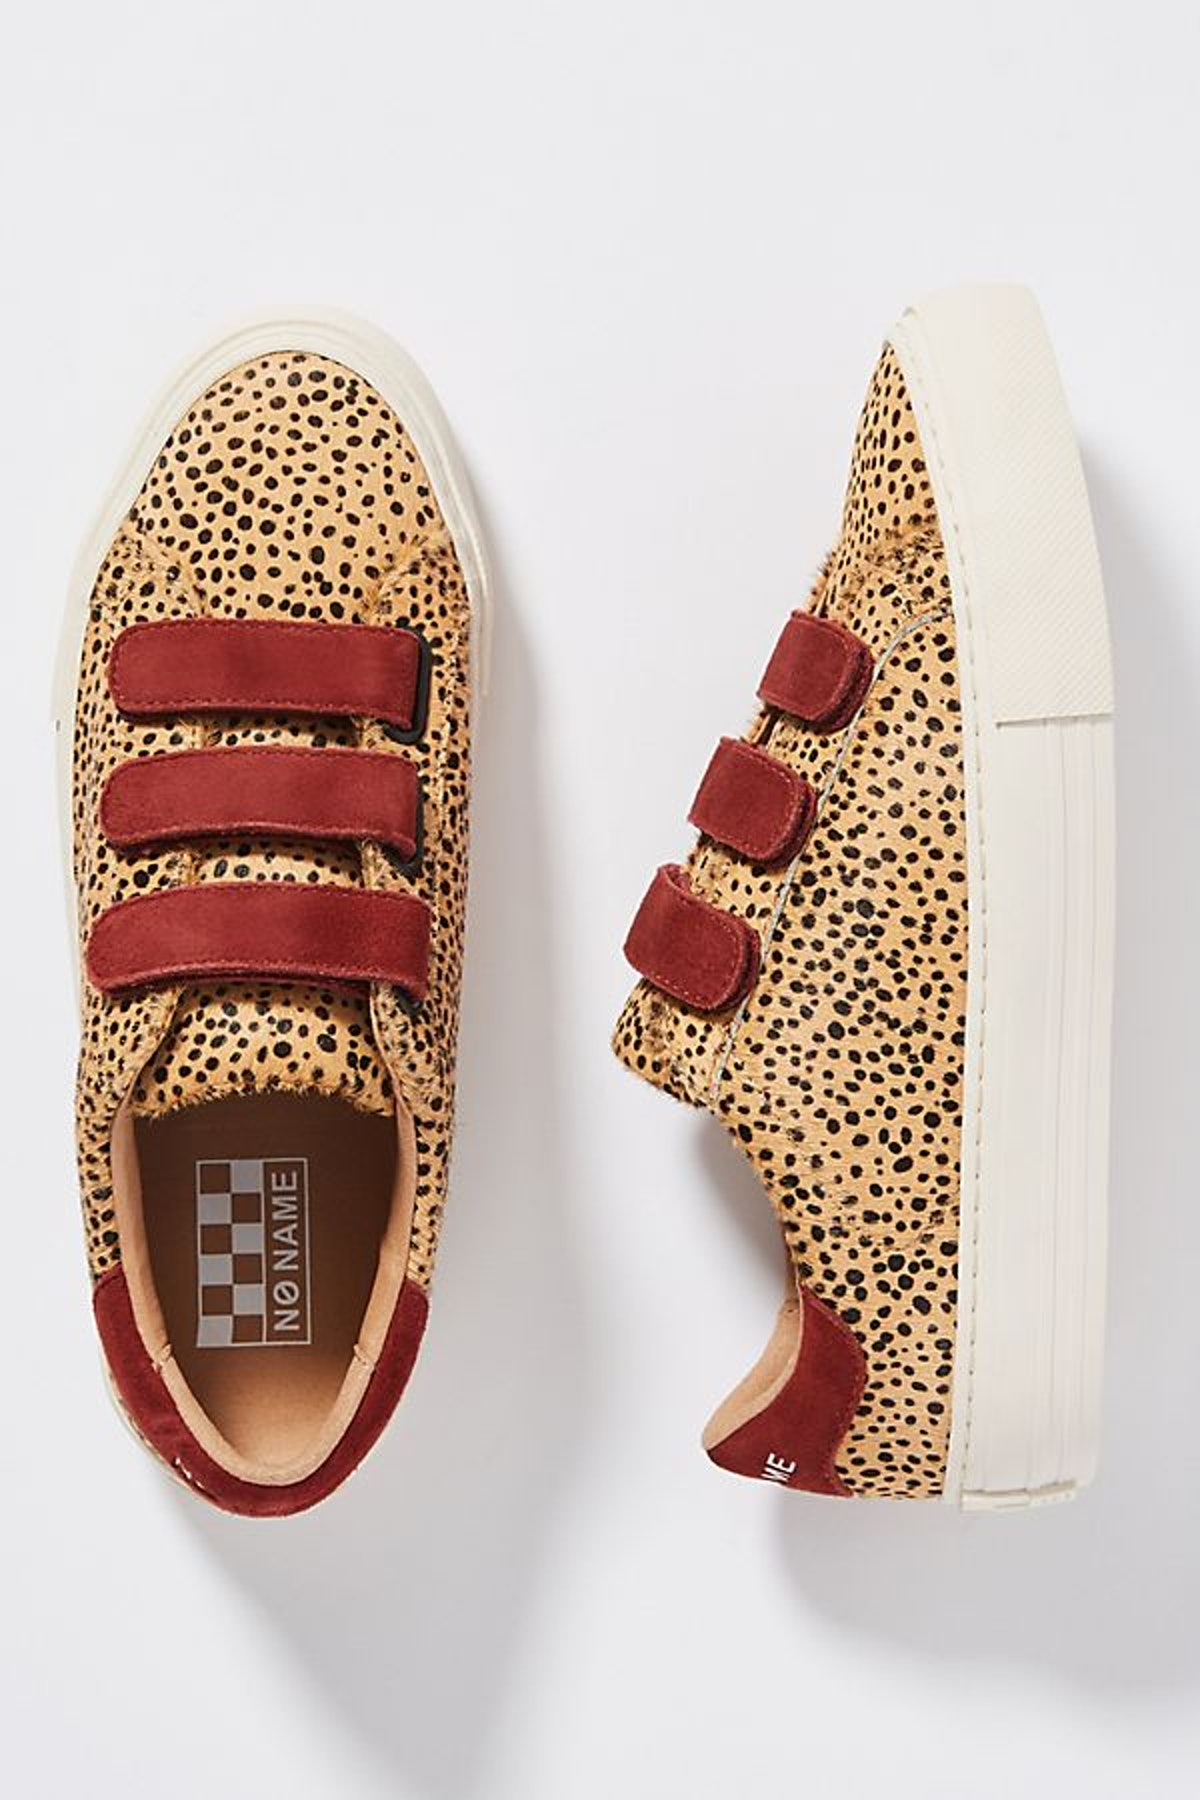 No Name Leopard Arcade Sneakers